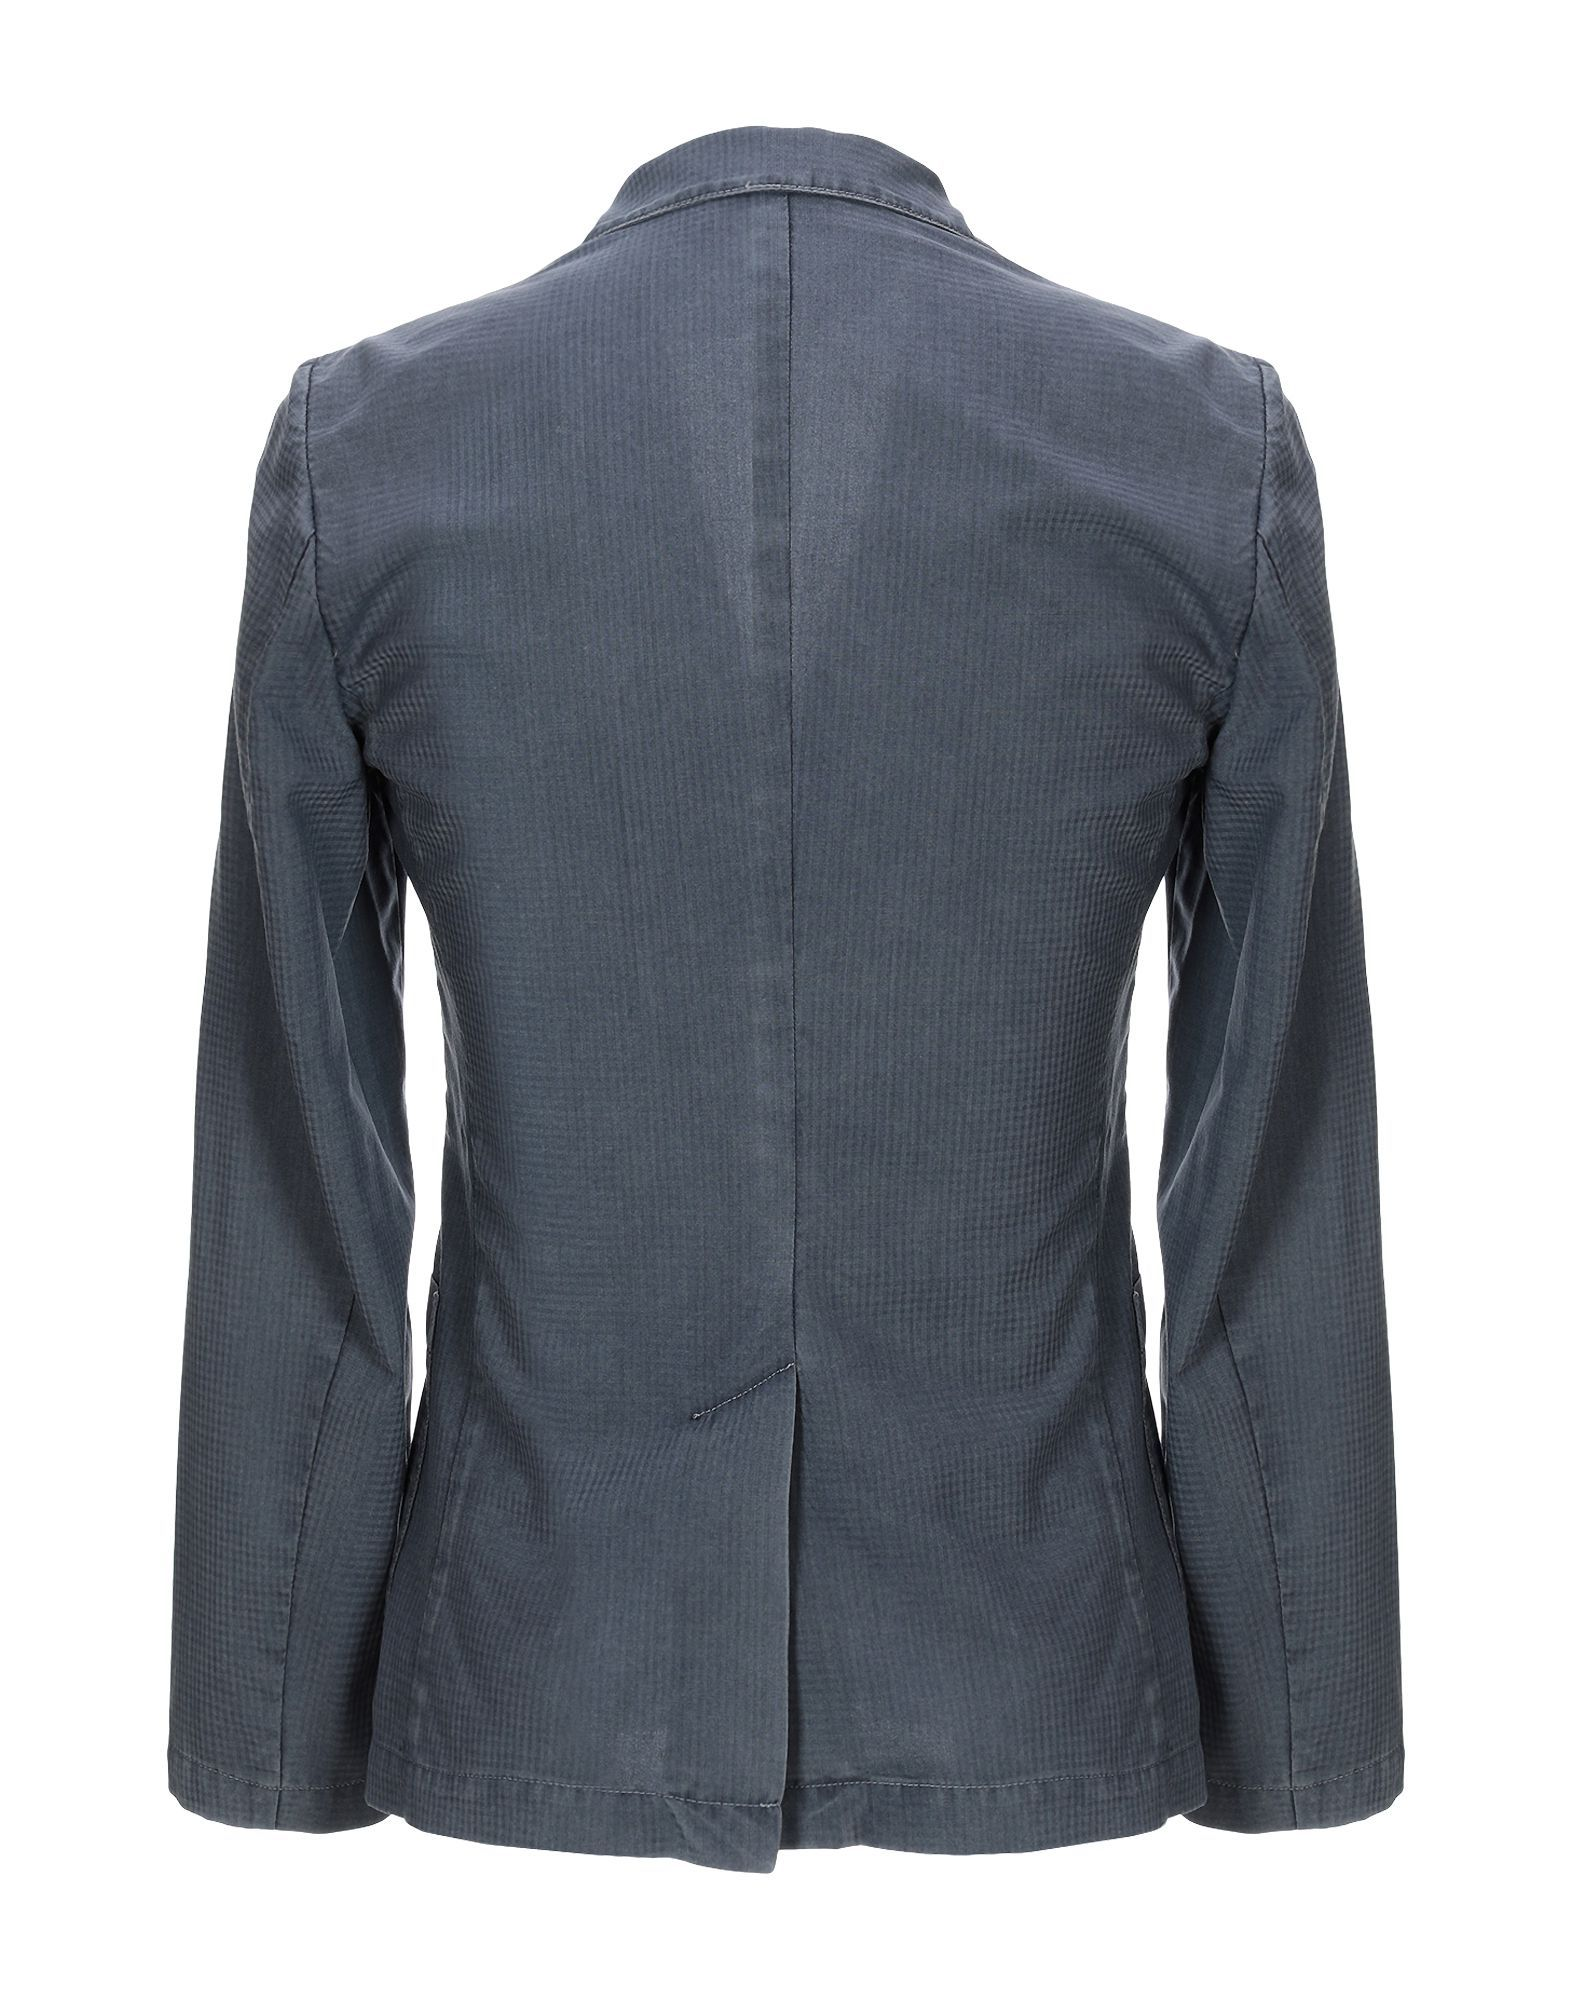 SUITS AND JACKETS Myths Slate blue Man Virgin Wool